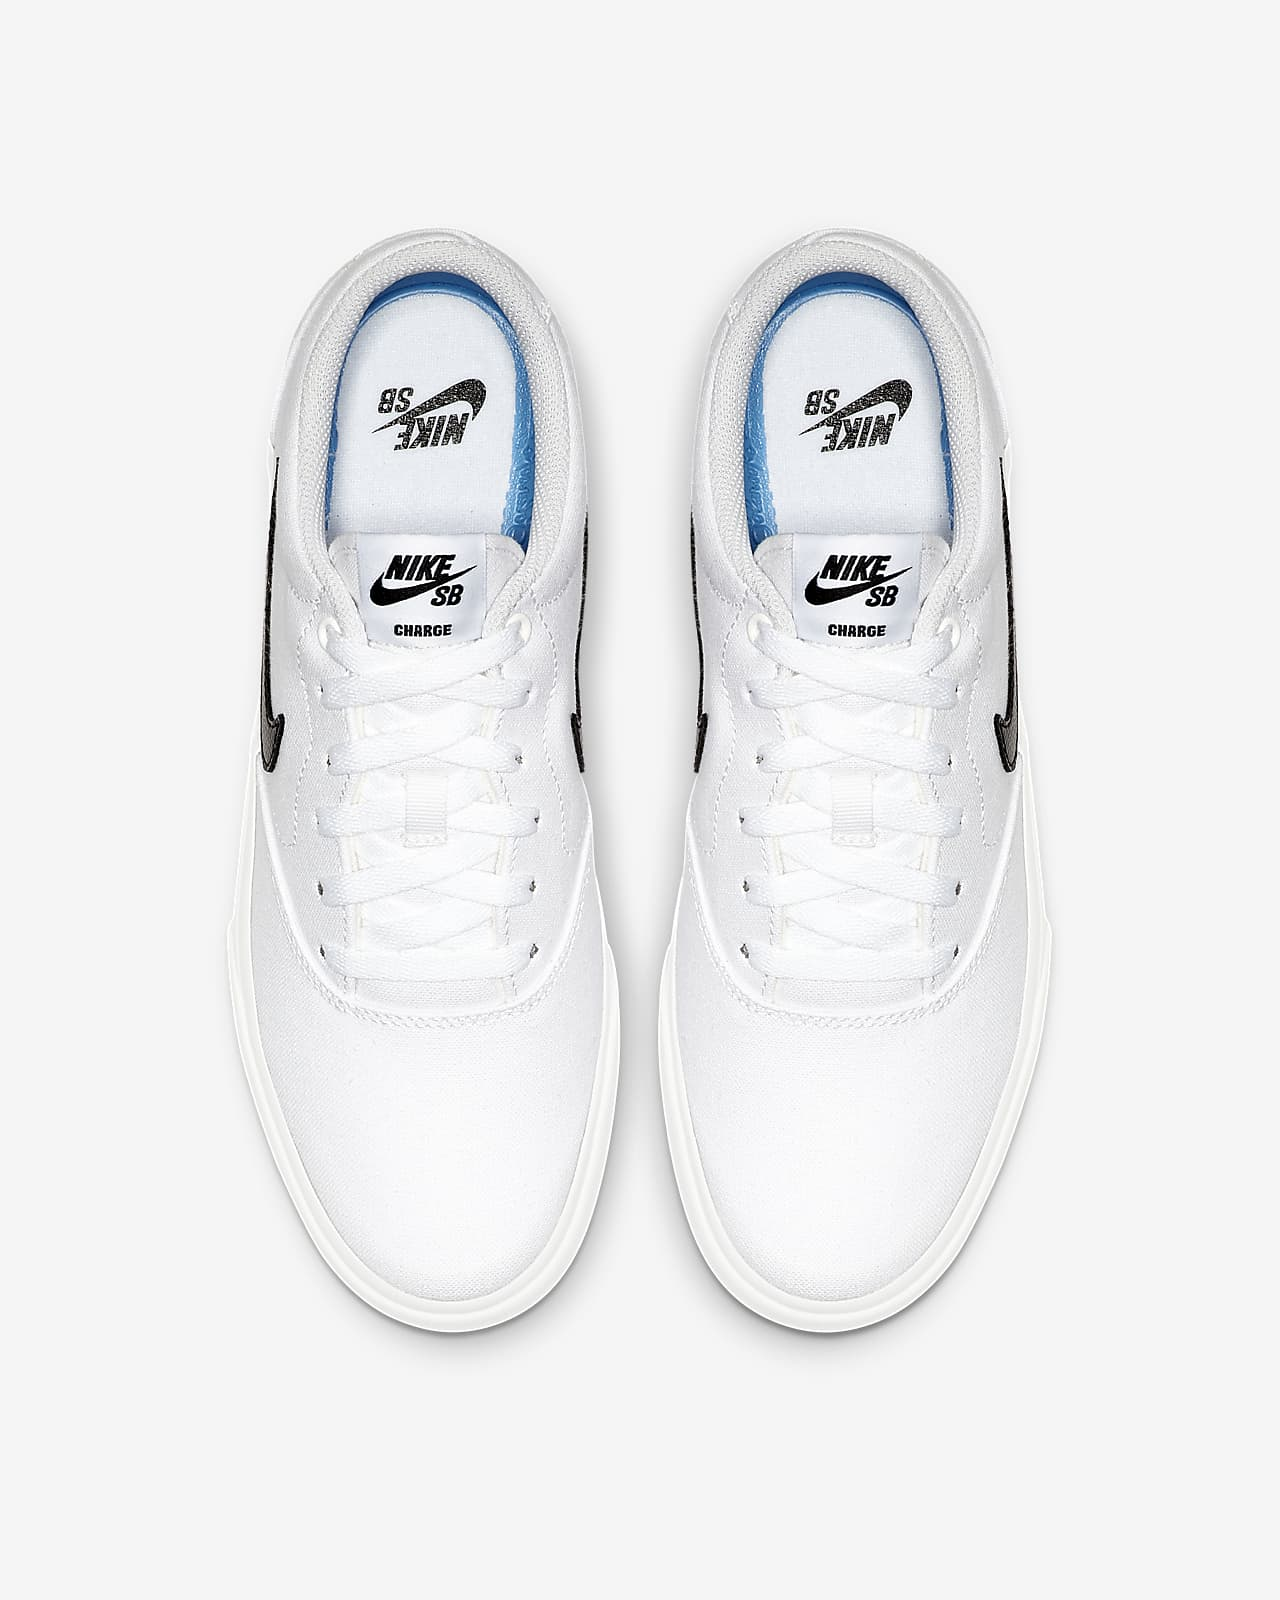 chaussure homme nike sb charge